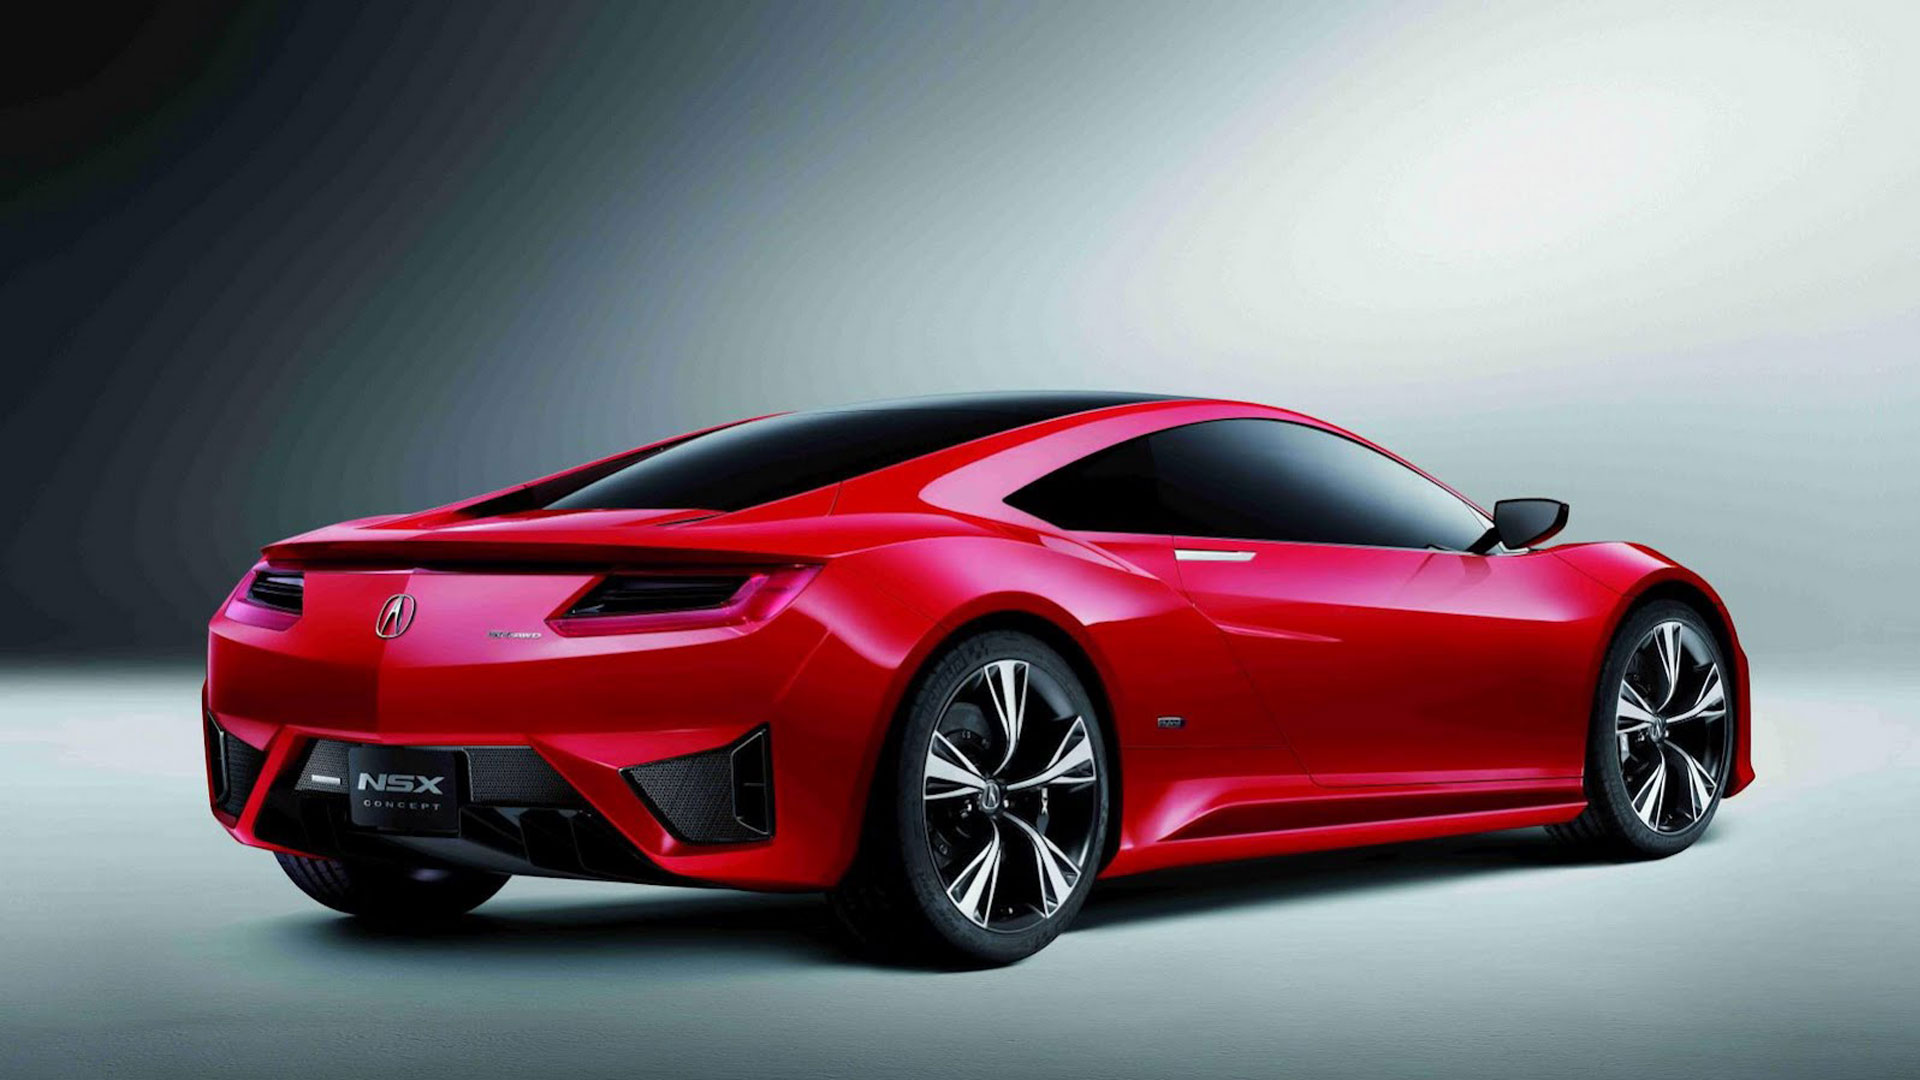 Acura NSX Red Modification Cars Wallpaper